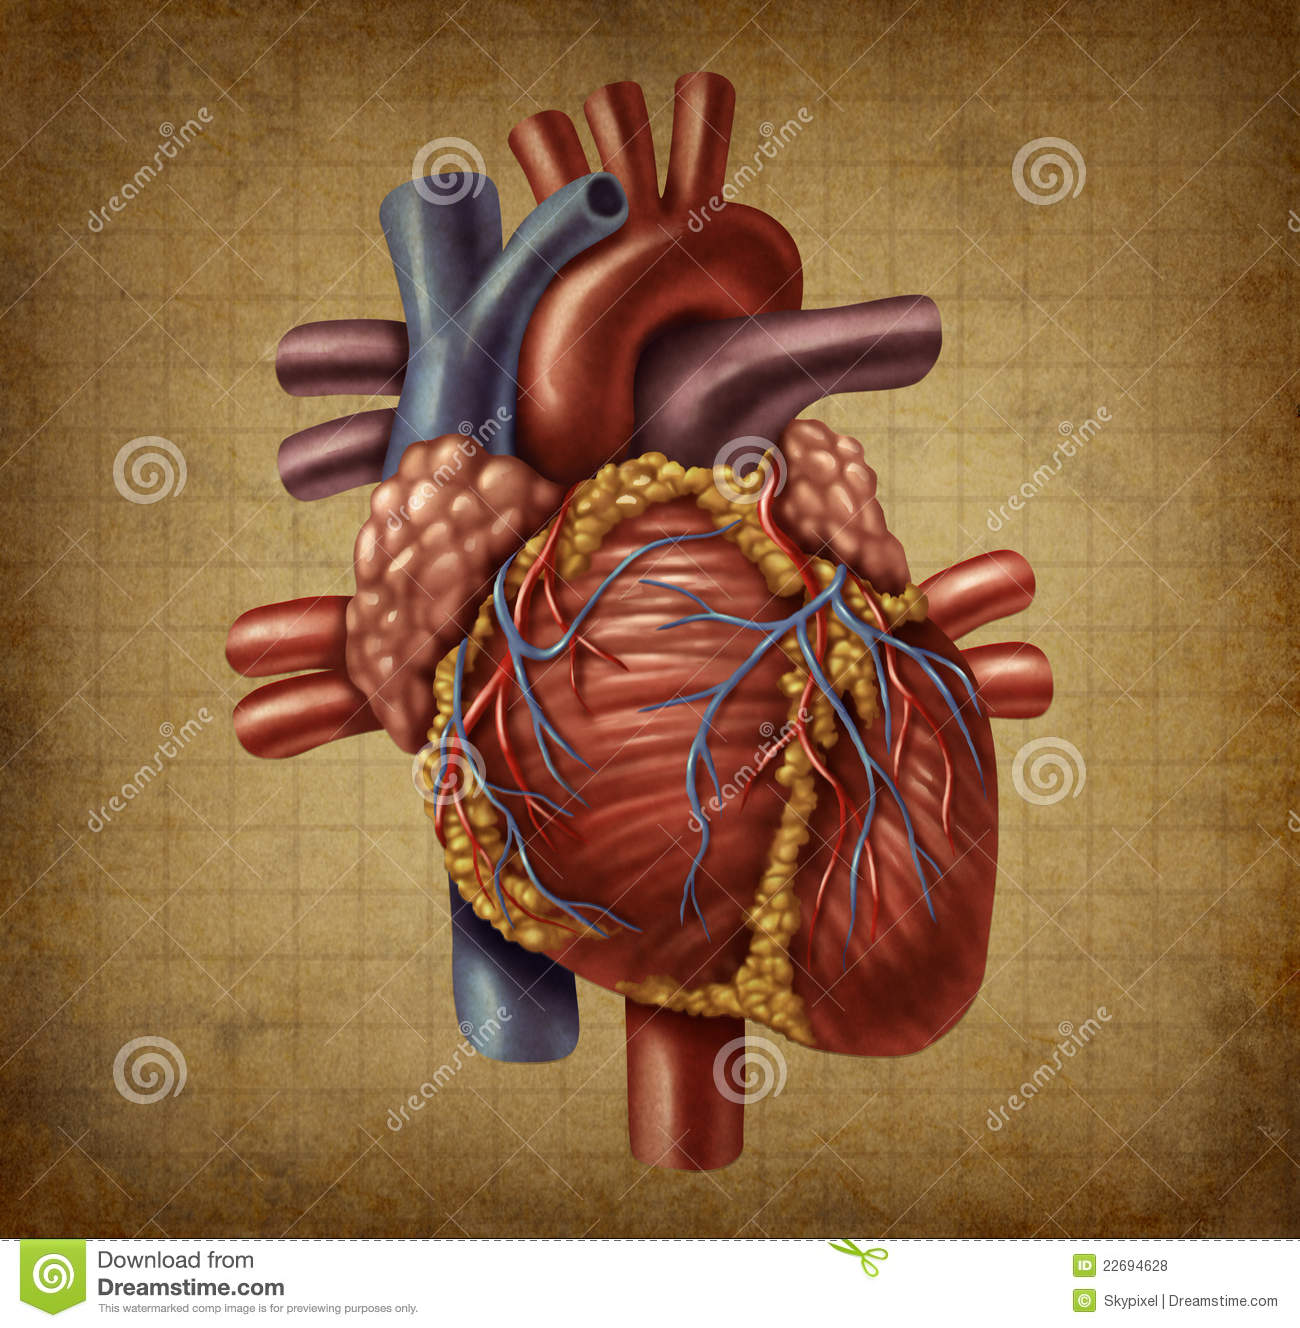 Human heart old grunge medical document stock illustration human heart old grunge medical document ccuart Choice Image